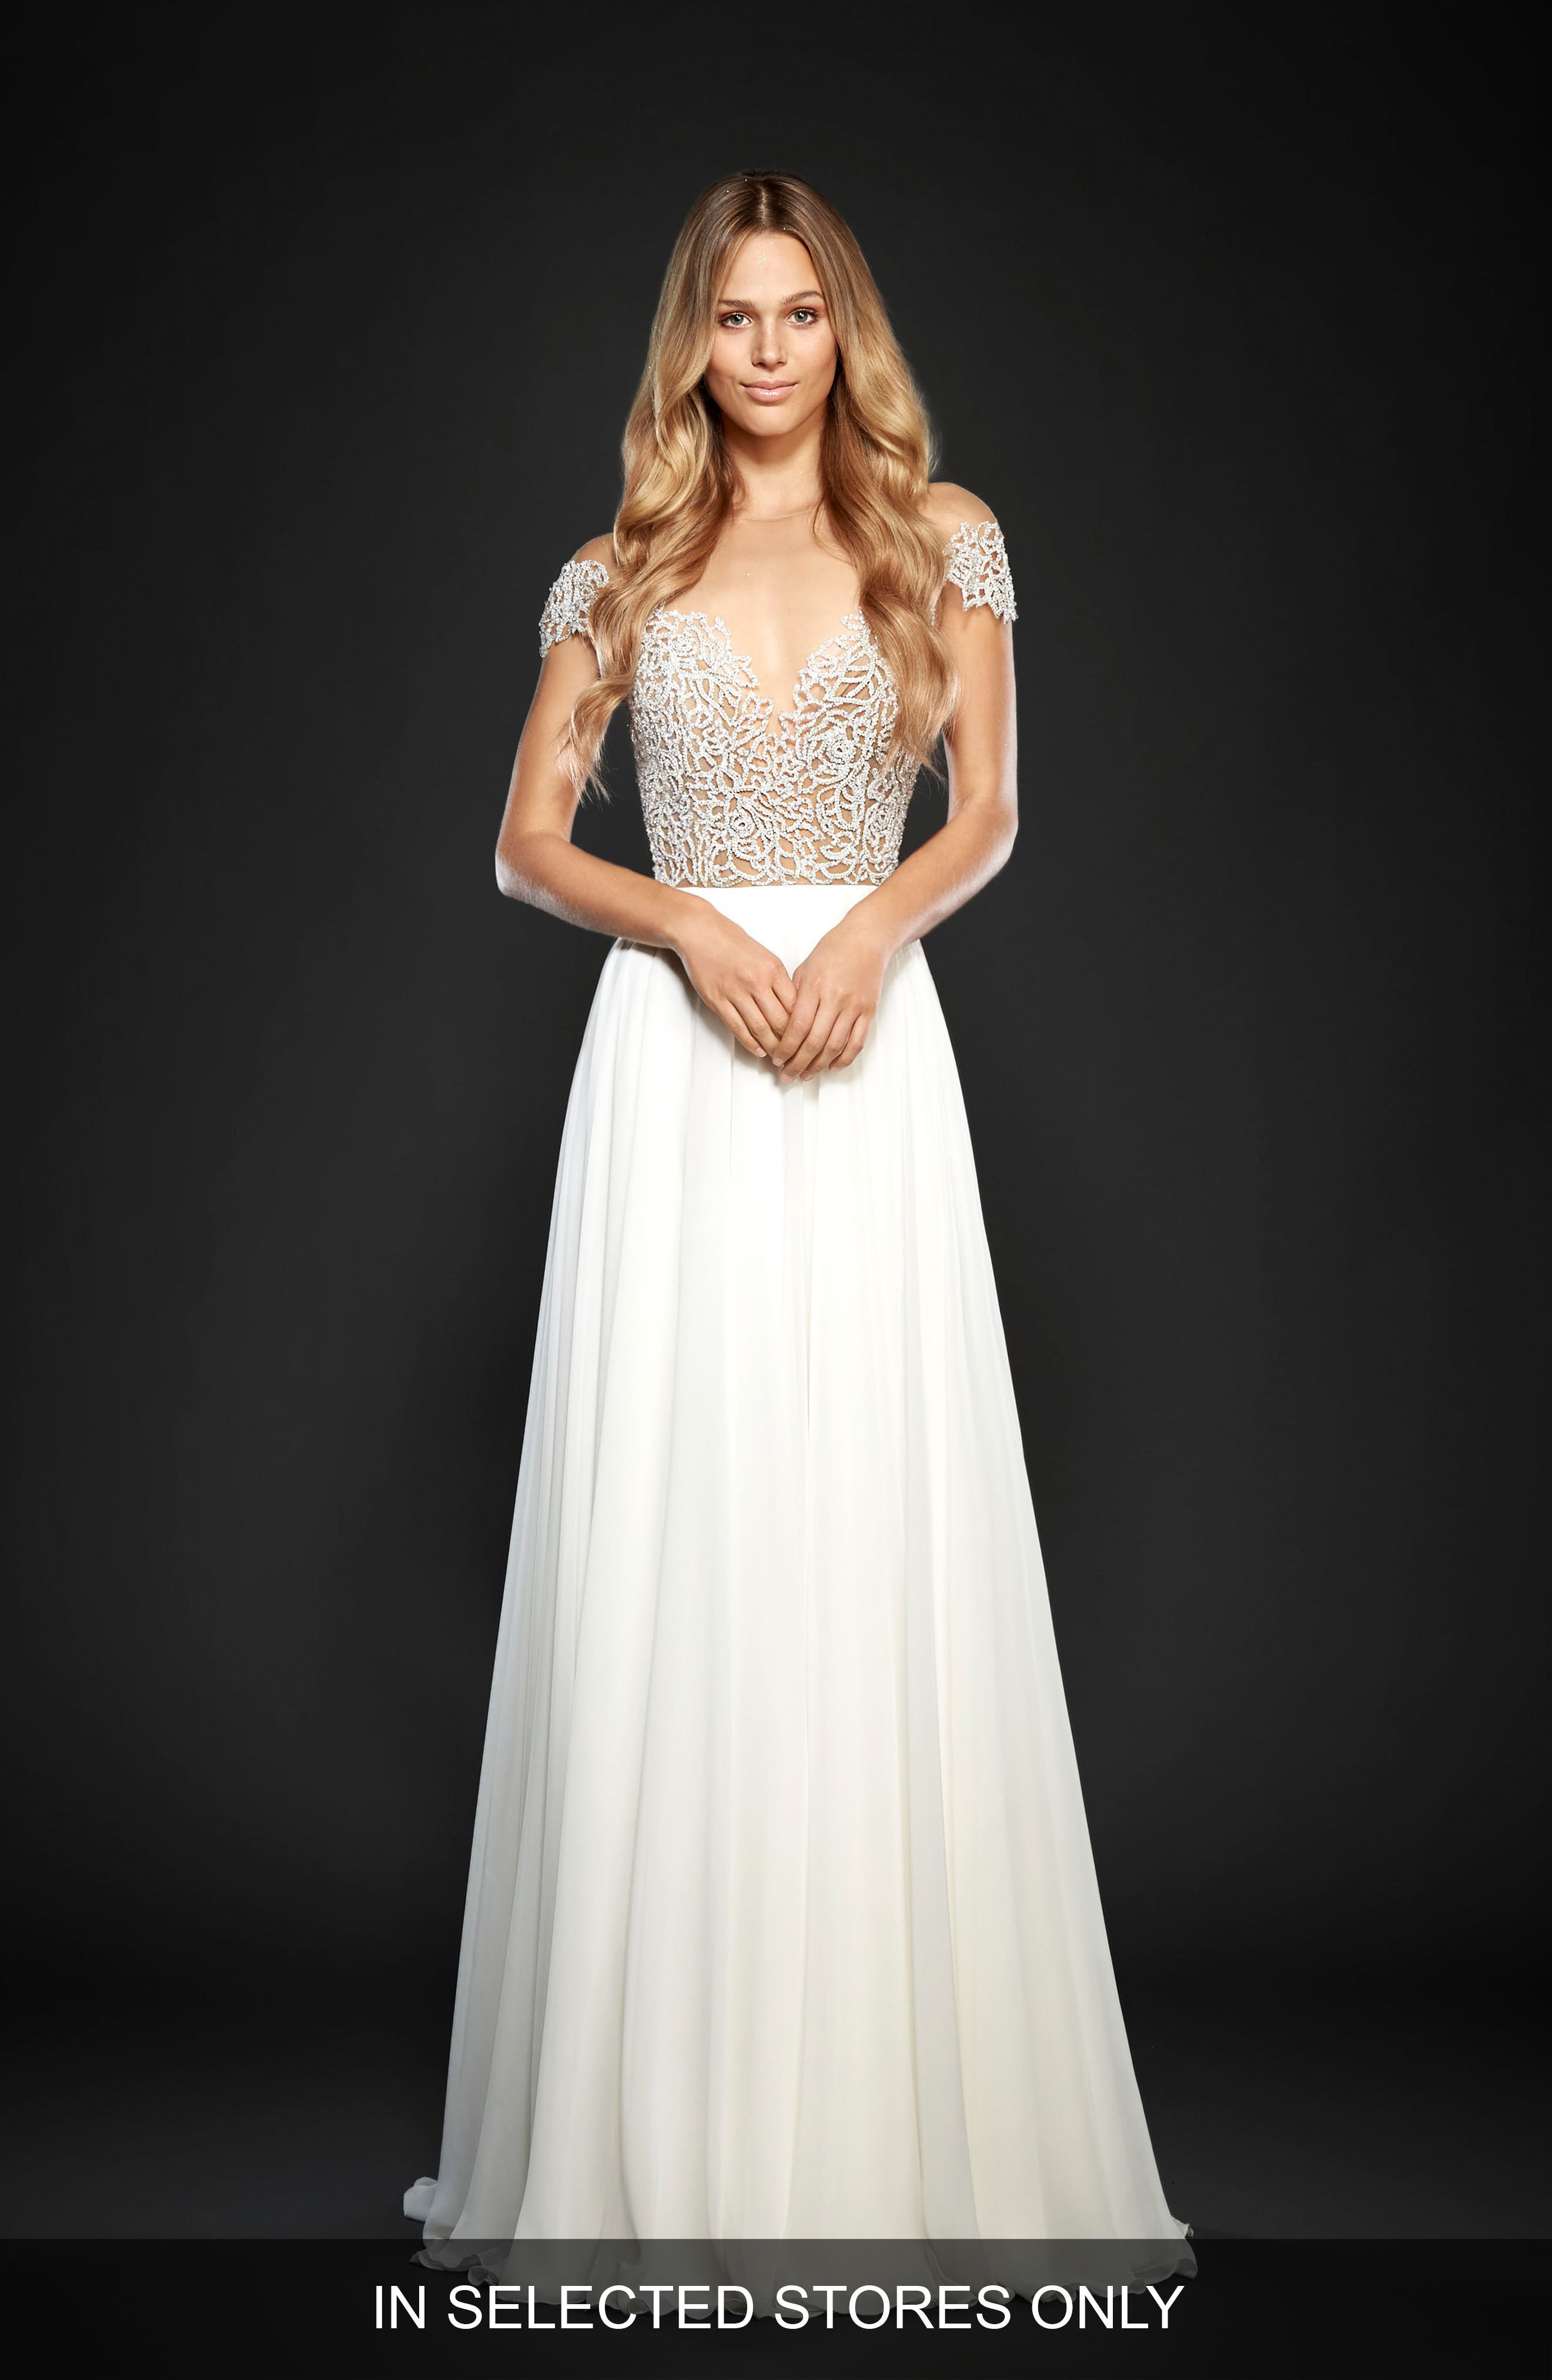 Hayley Paige Celine Embellished Illusion & Chiffon A-Line Gown (In Selected Stores Only)